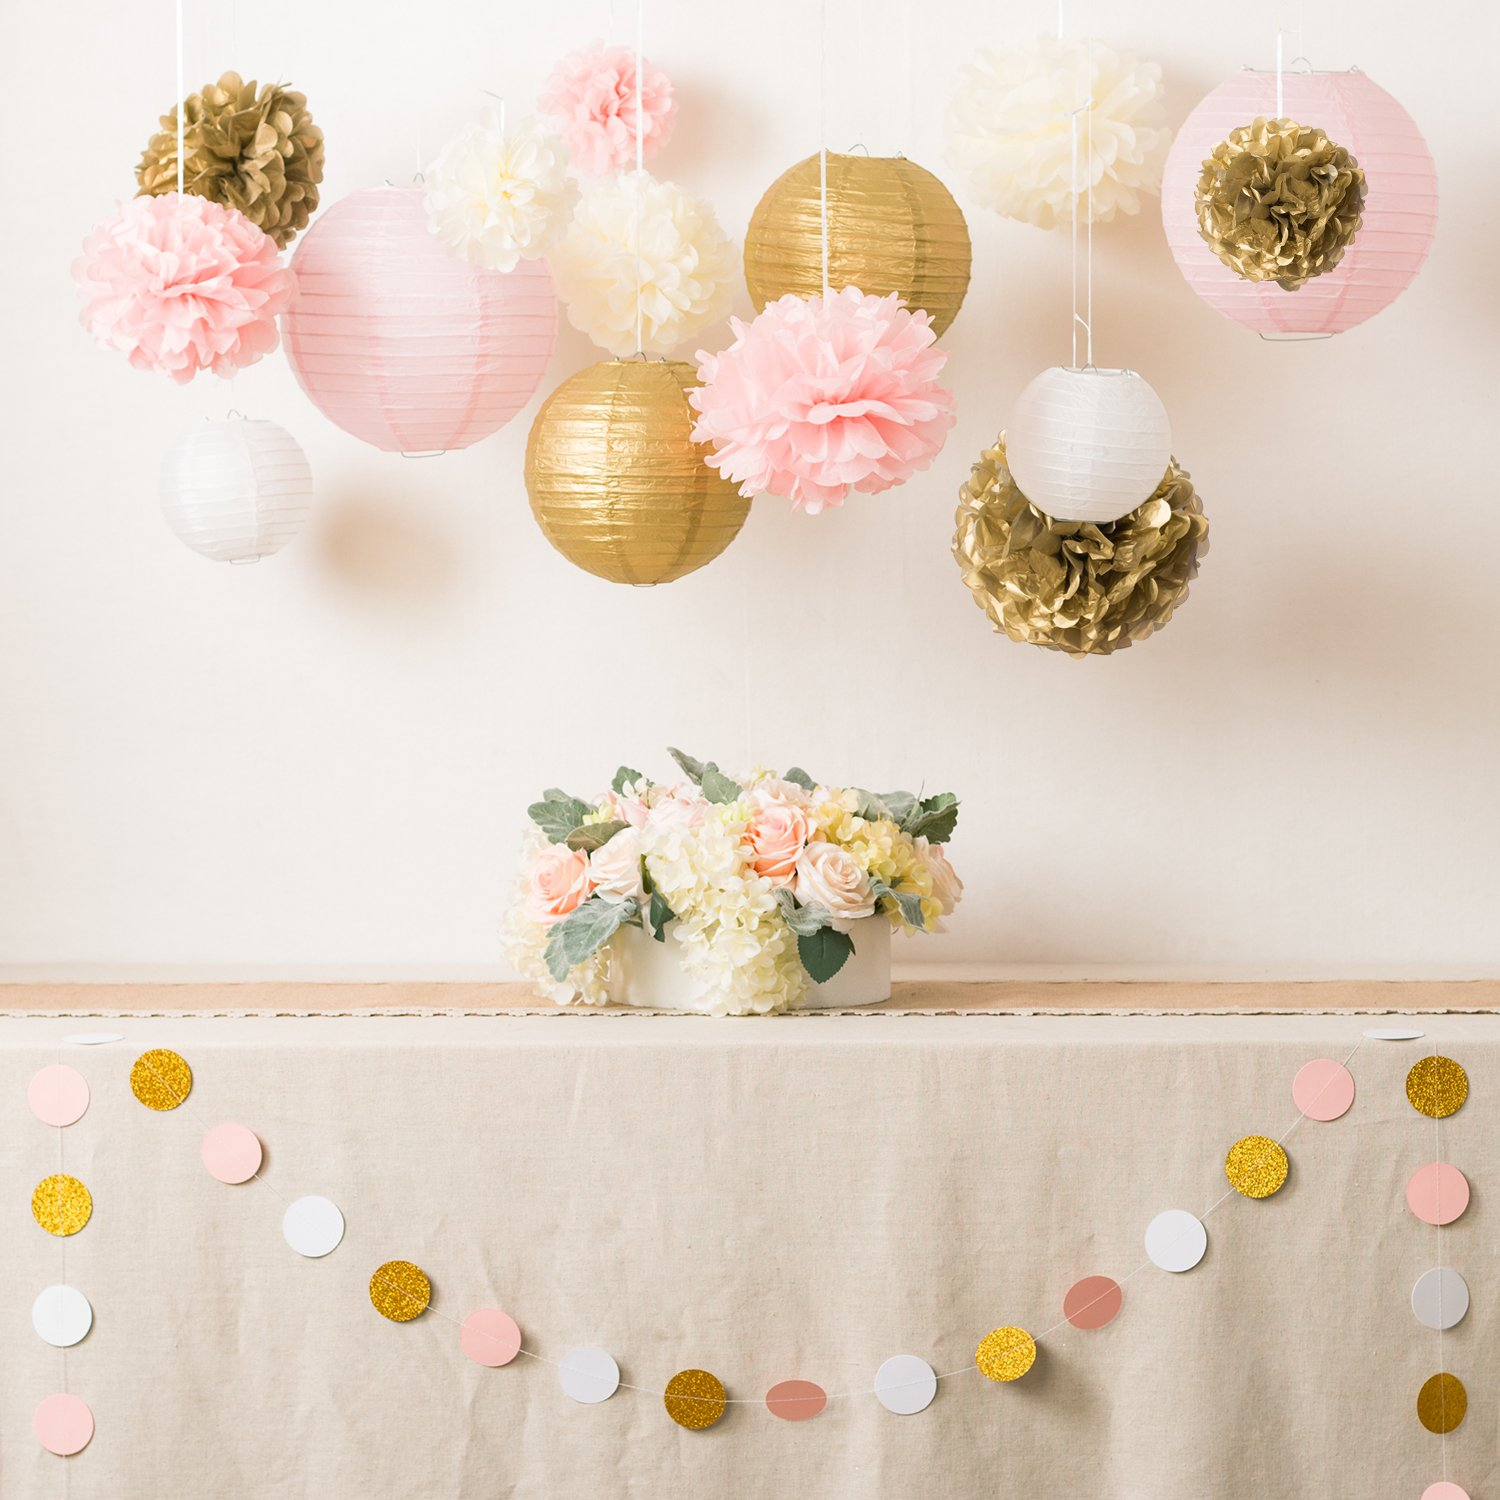 Ling's moment Pink and gold Party Decorations Pom Poms Flowers Kit +Circle paper Garland + Tissue Paper lantern for 1st birthday decorations Kids Birthday Bridal Shower Baby Shower wedding